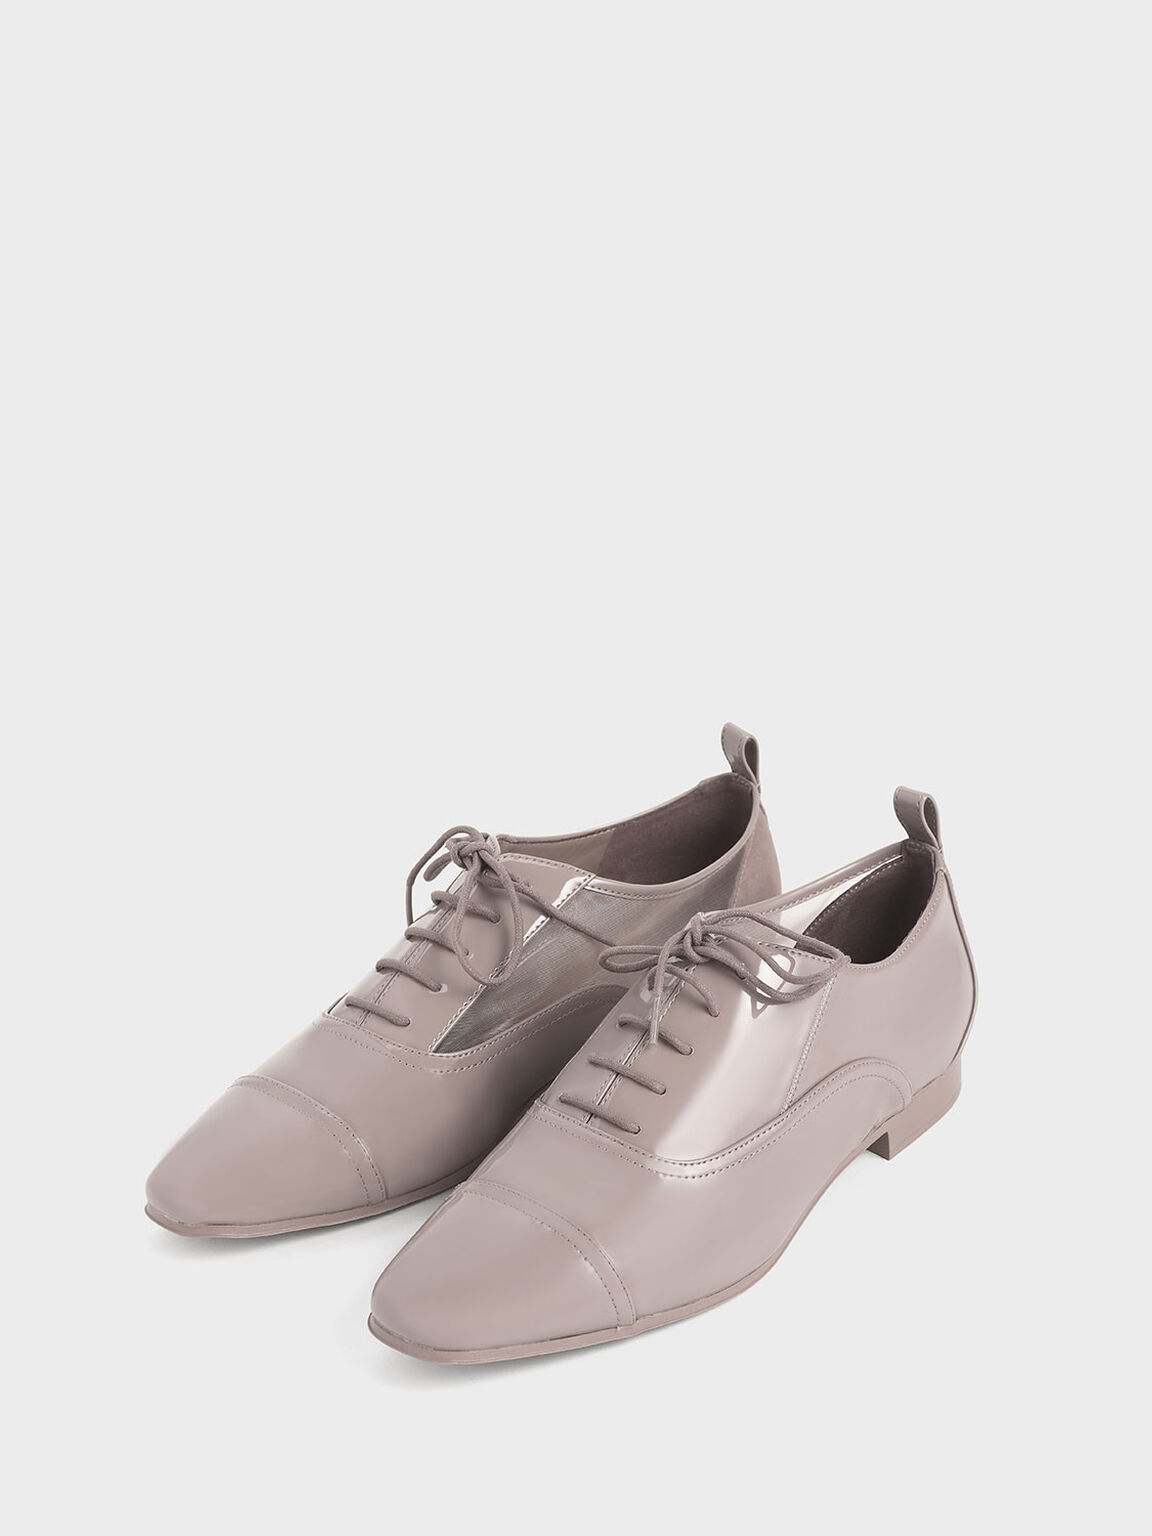 Patent Mesh Oxford Shoes, Nude, hi-res